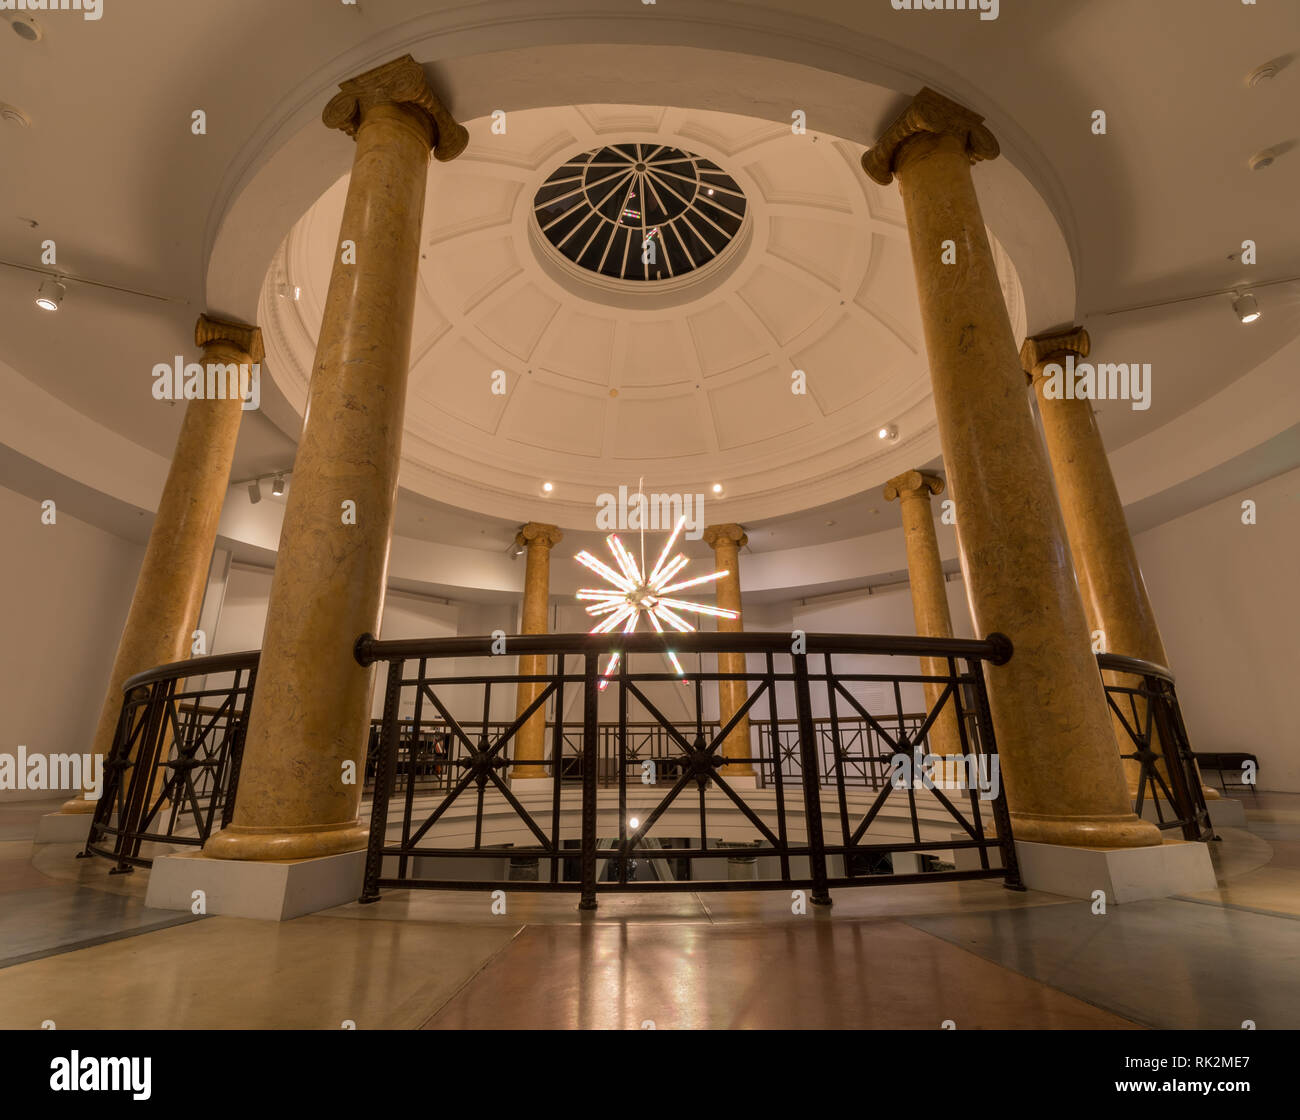 Palo Alto, California - February 7, 2019:  Interiors of the Cantor Center for Visual Arts in San Francisco Bay Area. - Stock Image